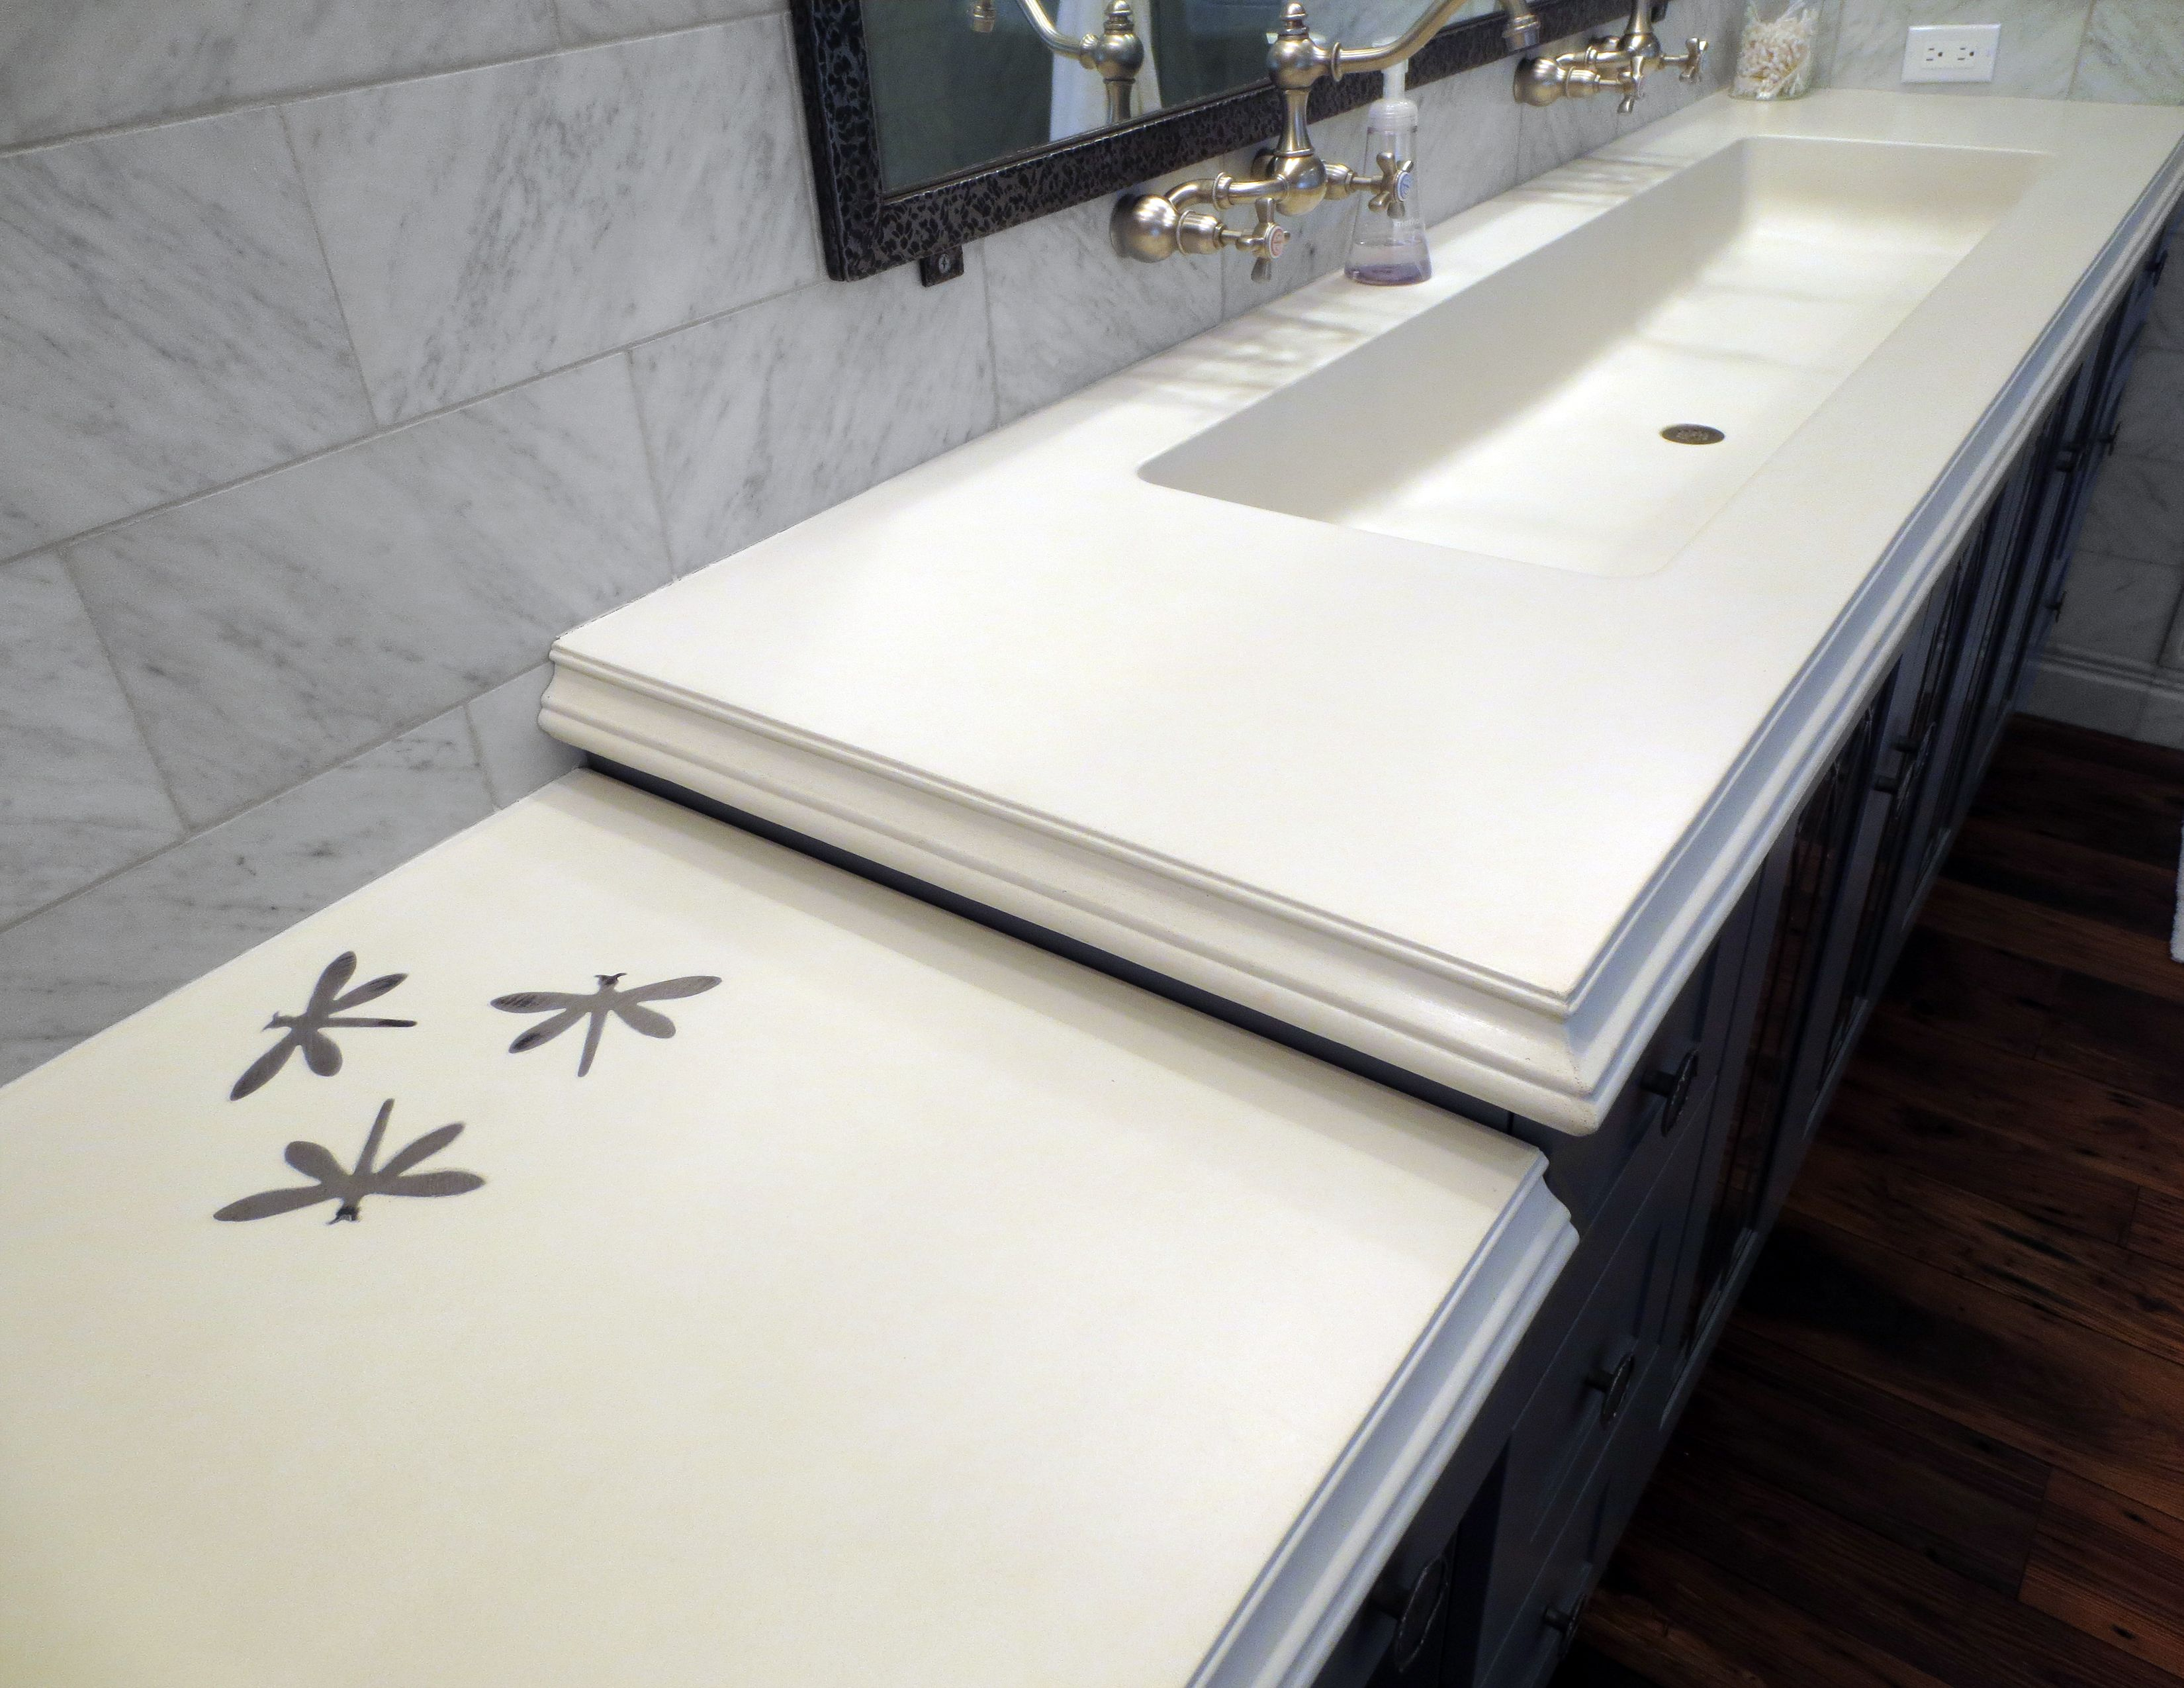 White concrete bathroom sink with steel dragonfly inlays